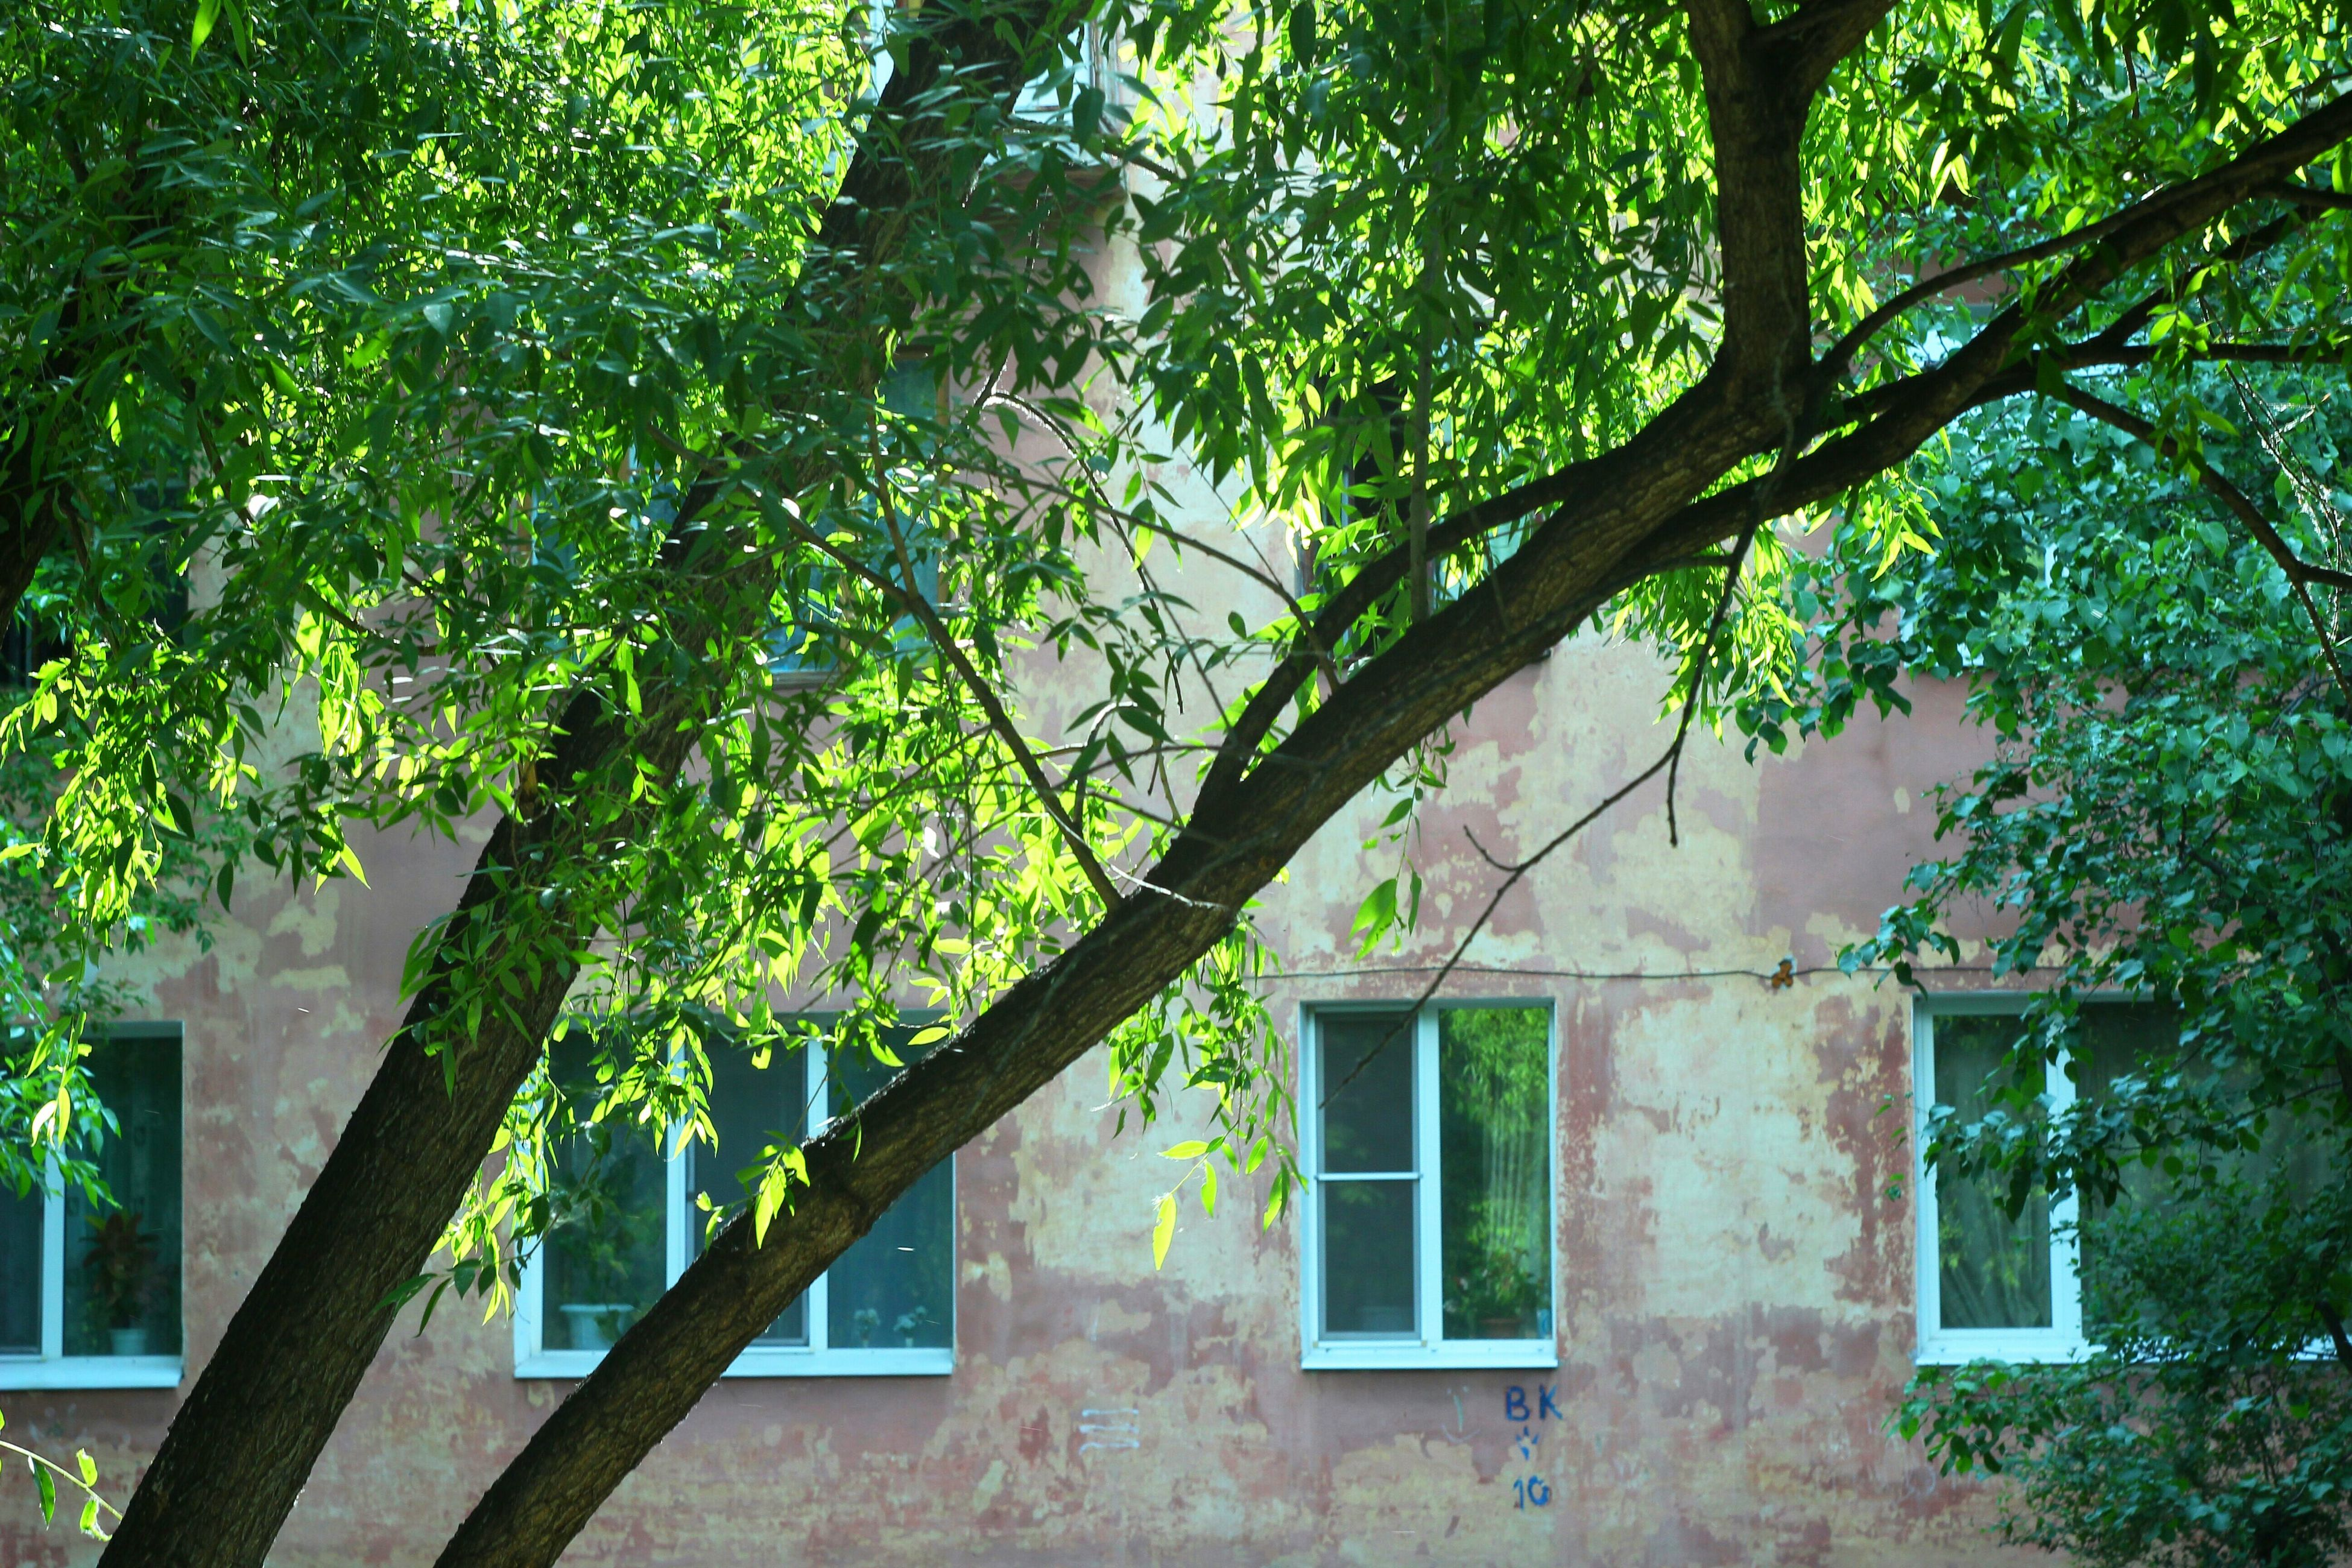 tree, green color, architecture, built structure, growth, no people, window, building exterior, day, branch, outdoors, nature, low angle view, plant, leaf